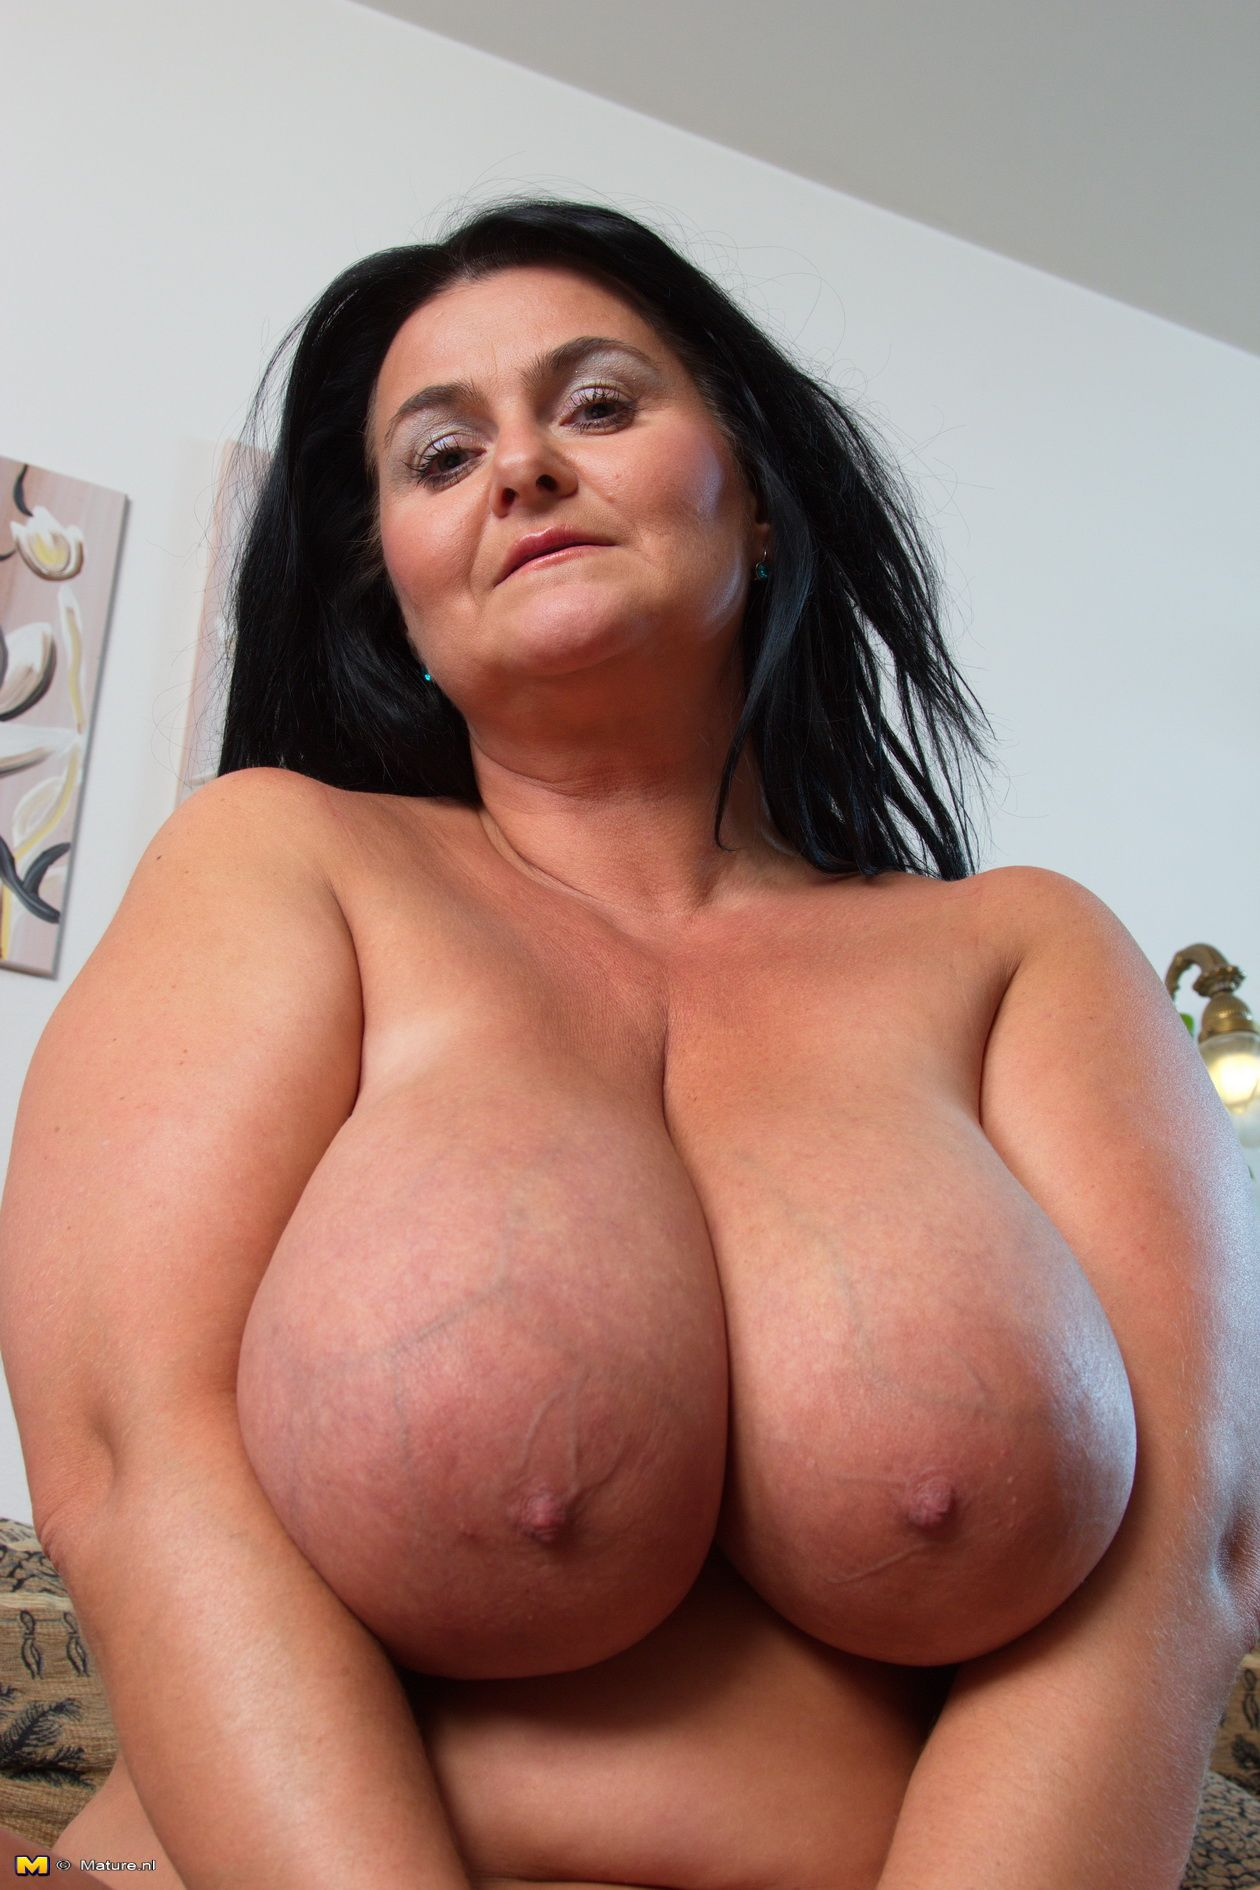 Hot milf huge breasts prostitution sting 10